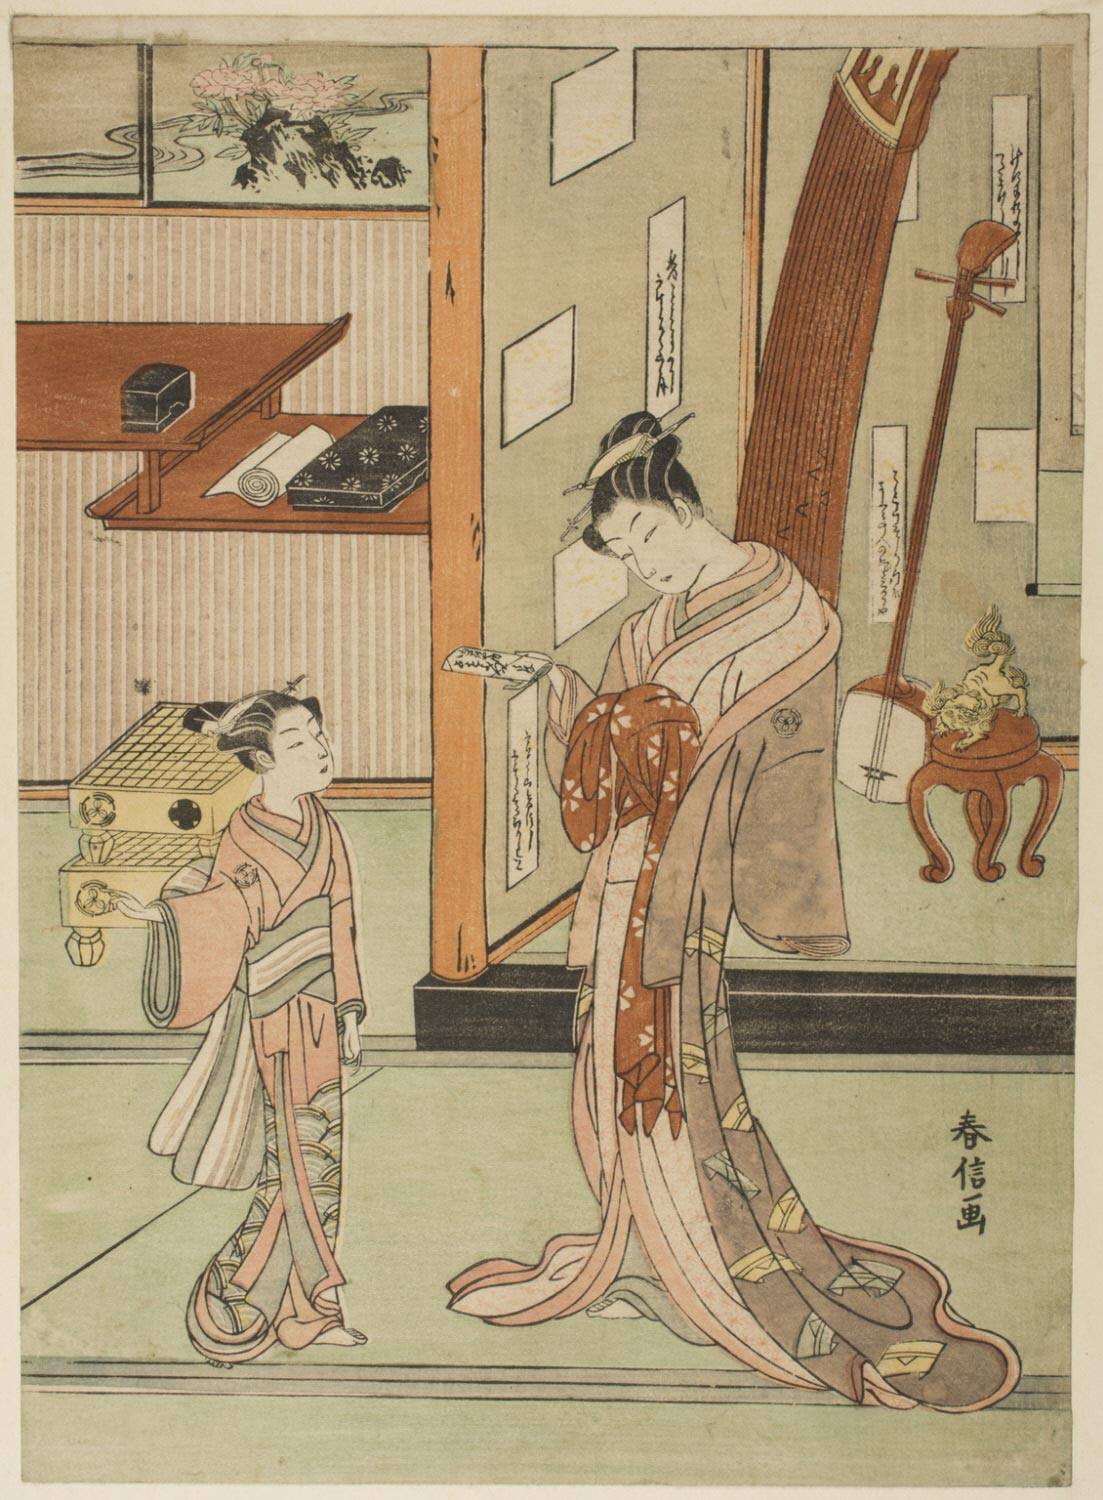 Courtesan Receiving Love Letter from Kamuro